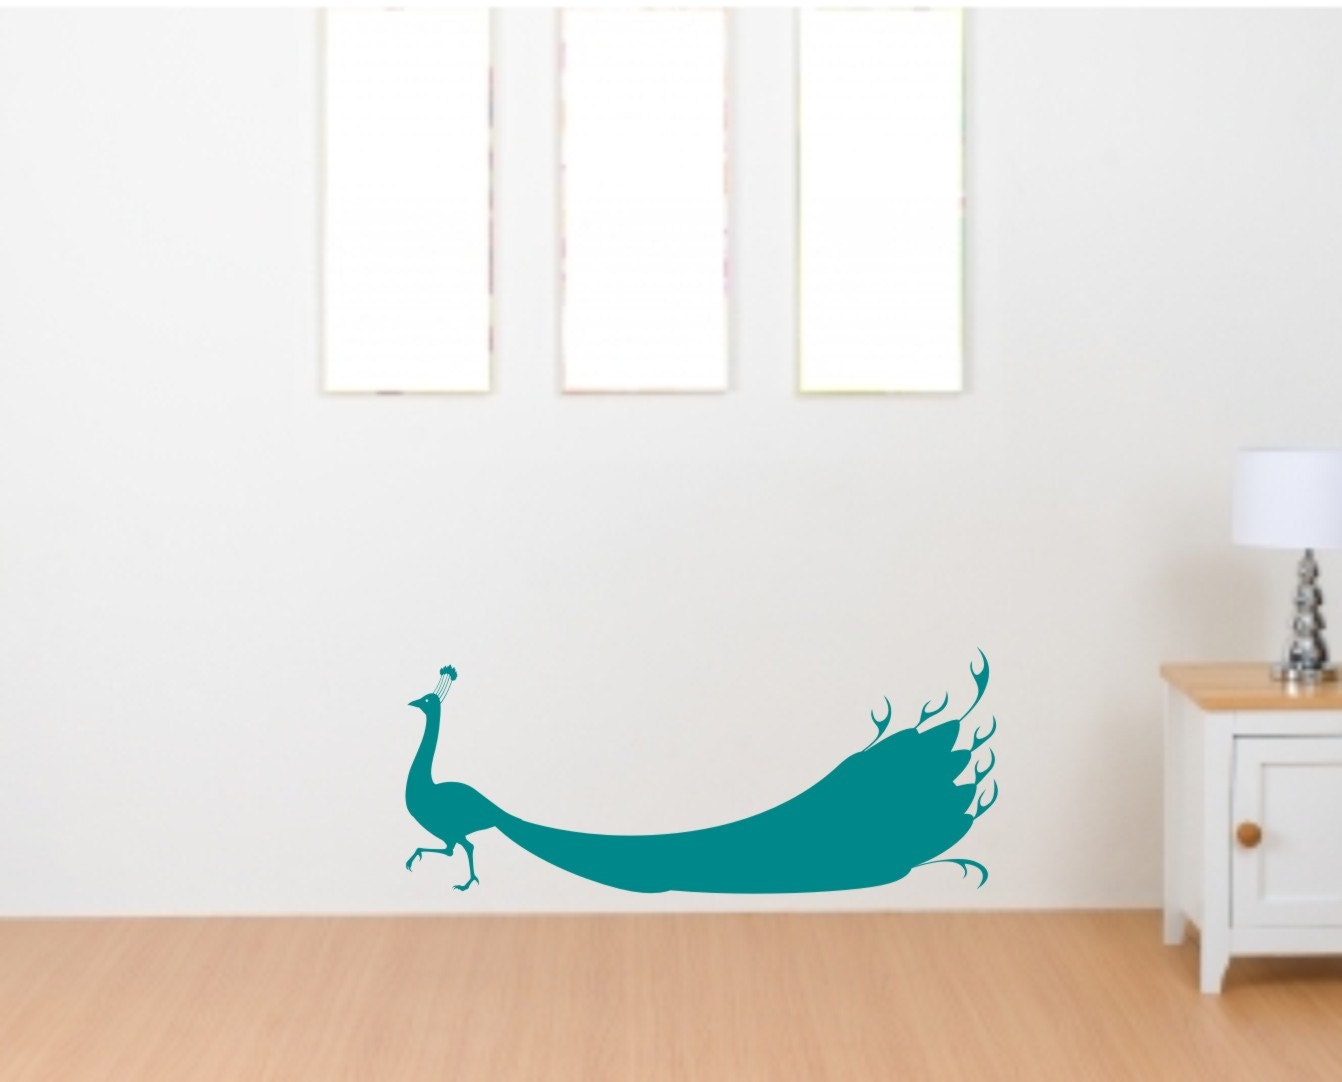 peacock silhouette vinyl wall decal decor by skywaywalls on etsy. Black Bedroom Furniture Sets. Home Design Ideas